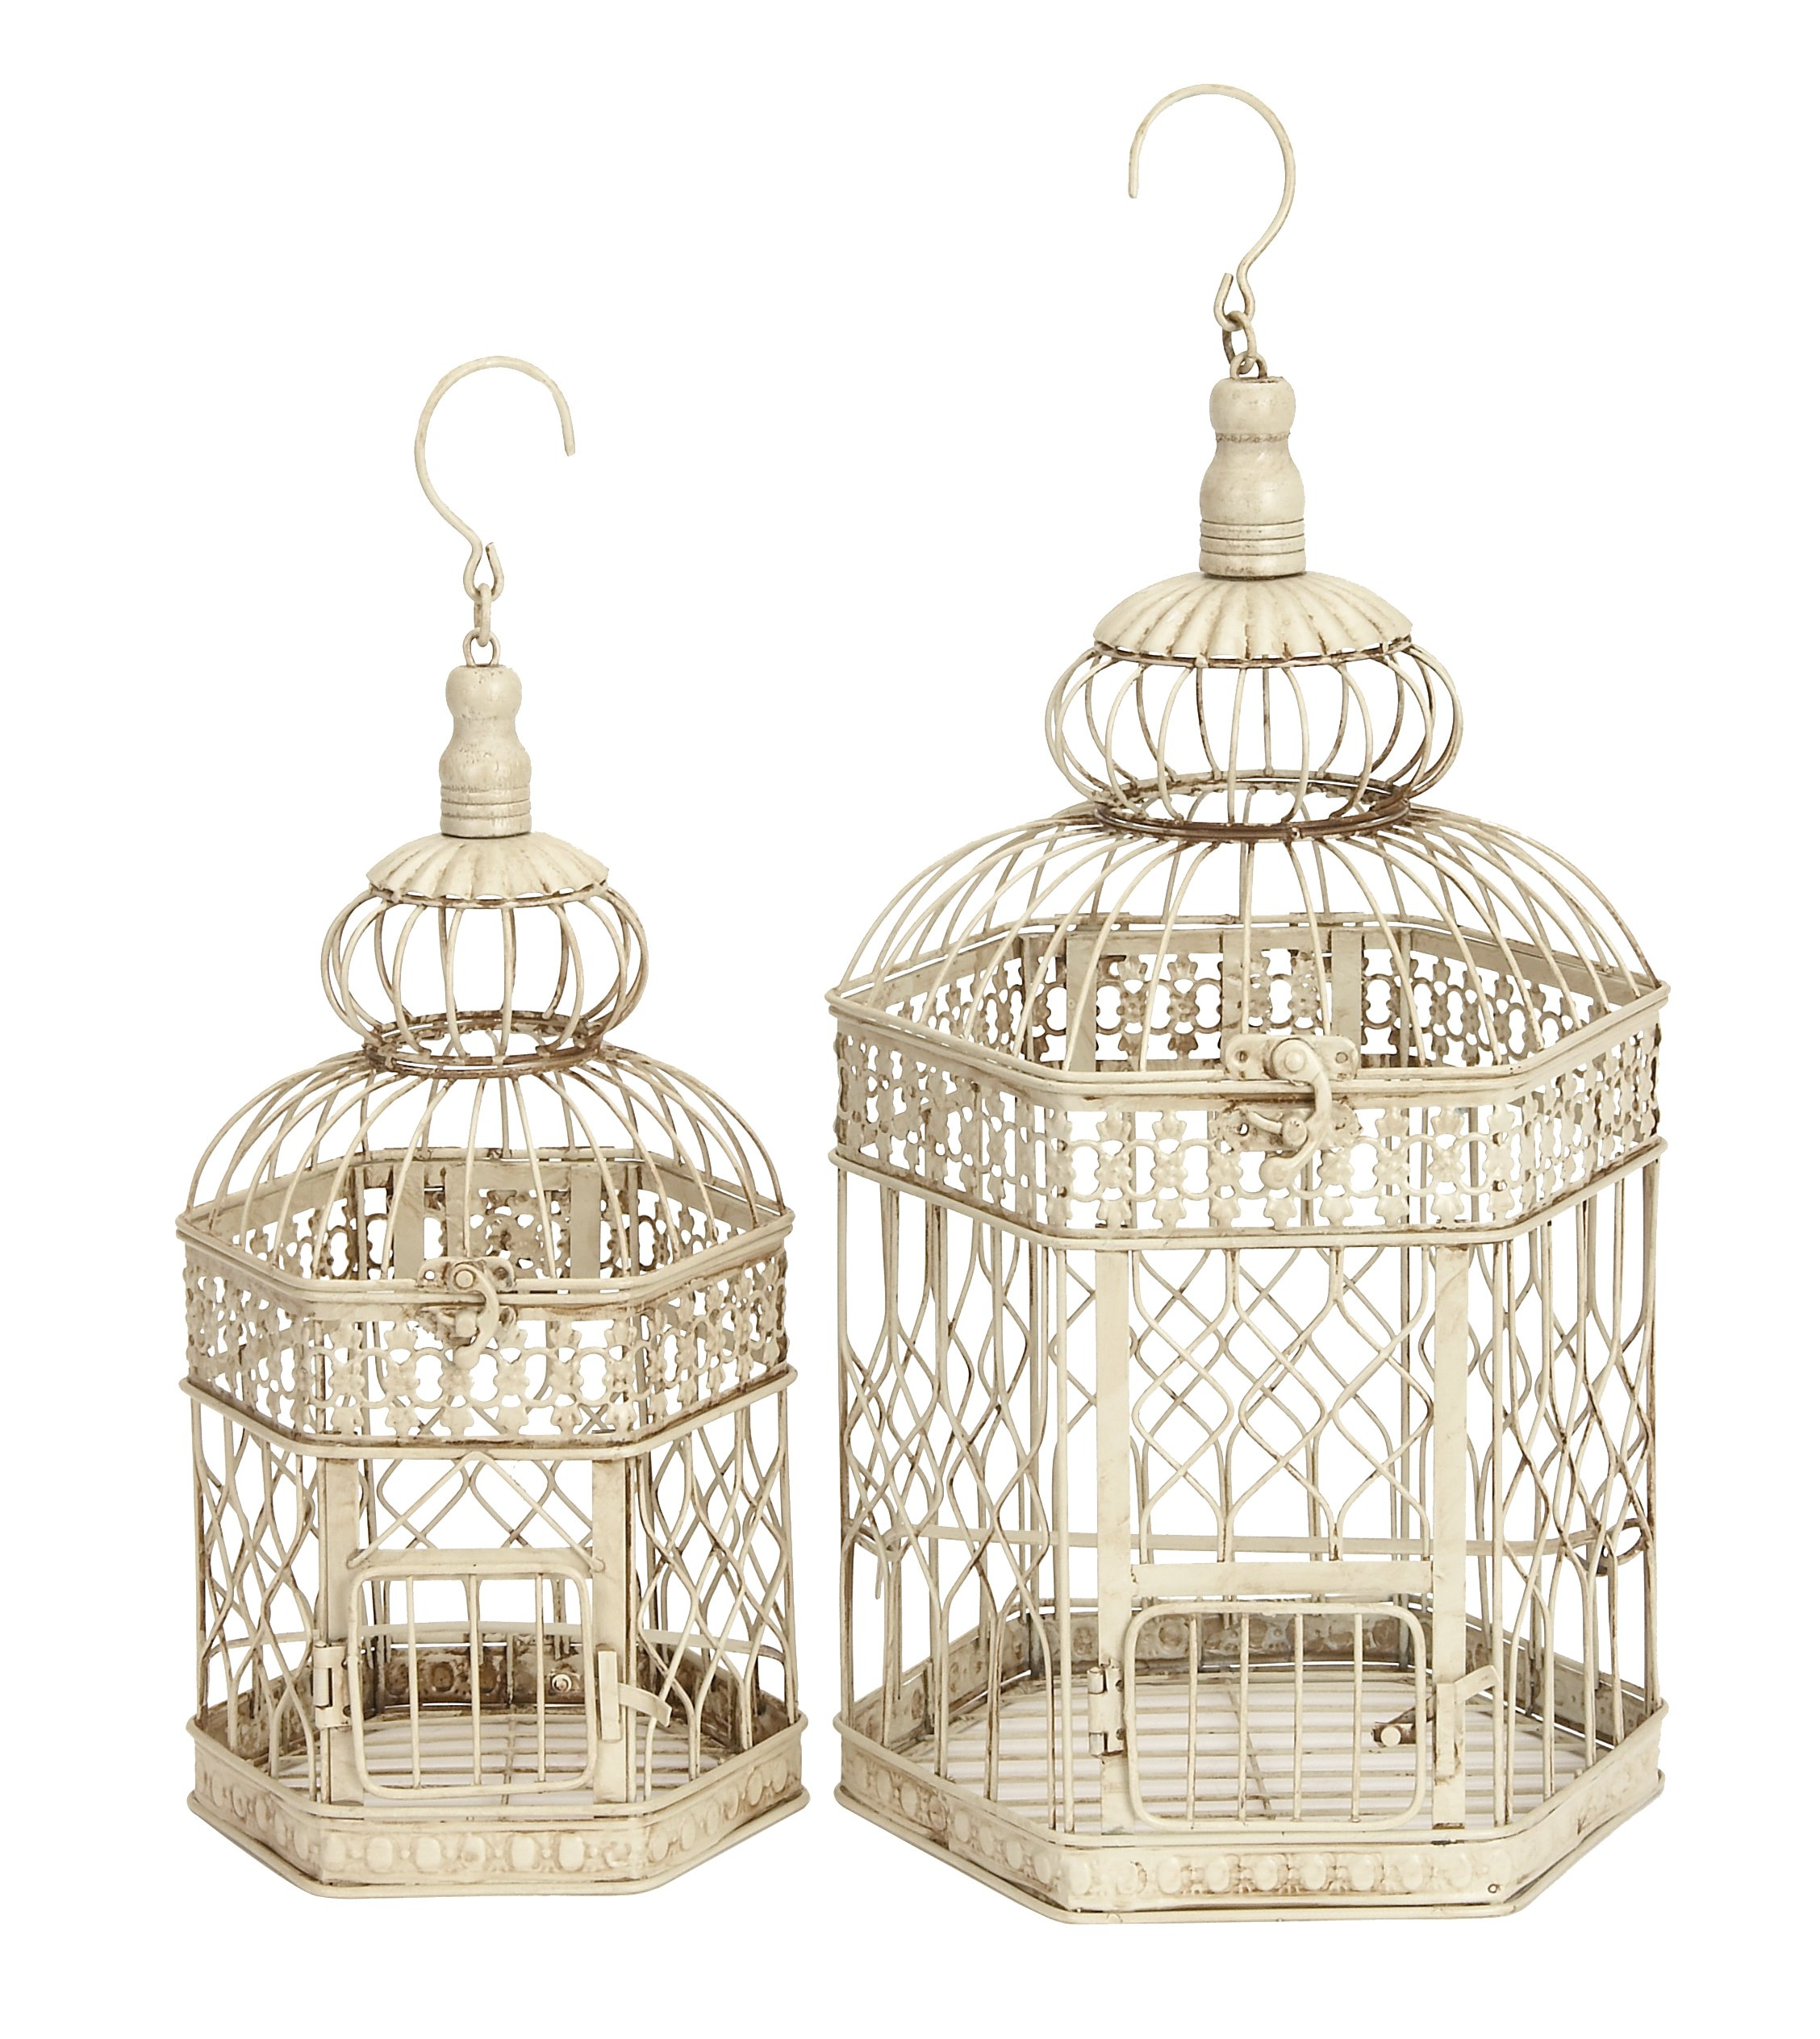 Deco 79 Metal Bird Cage, 21-Inch and 18-Inch, Set of 2 by D'Eco